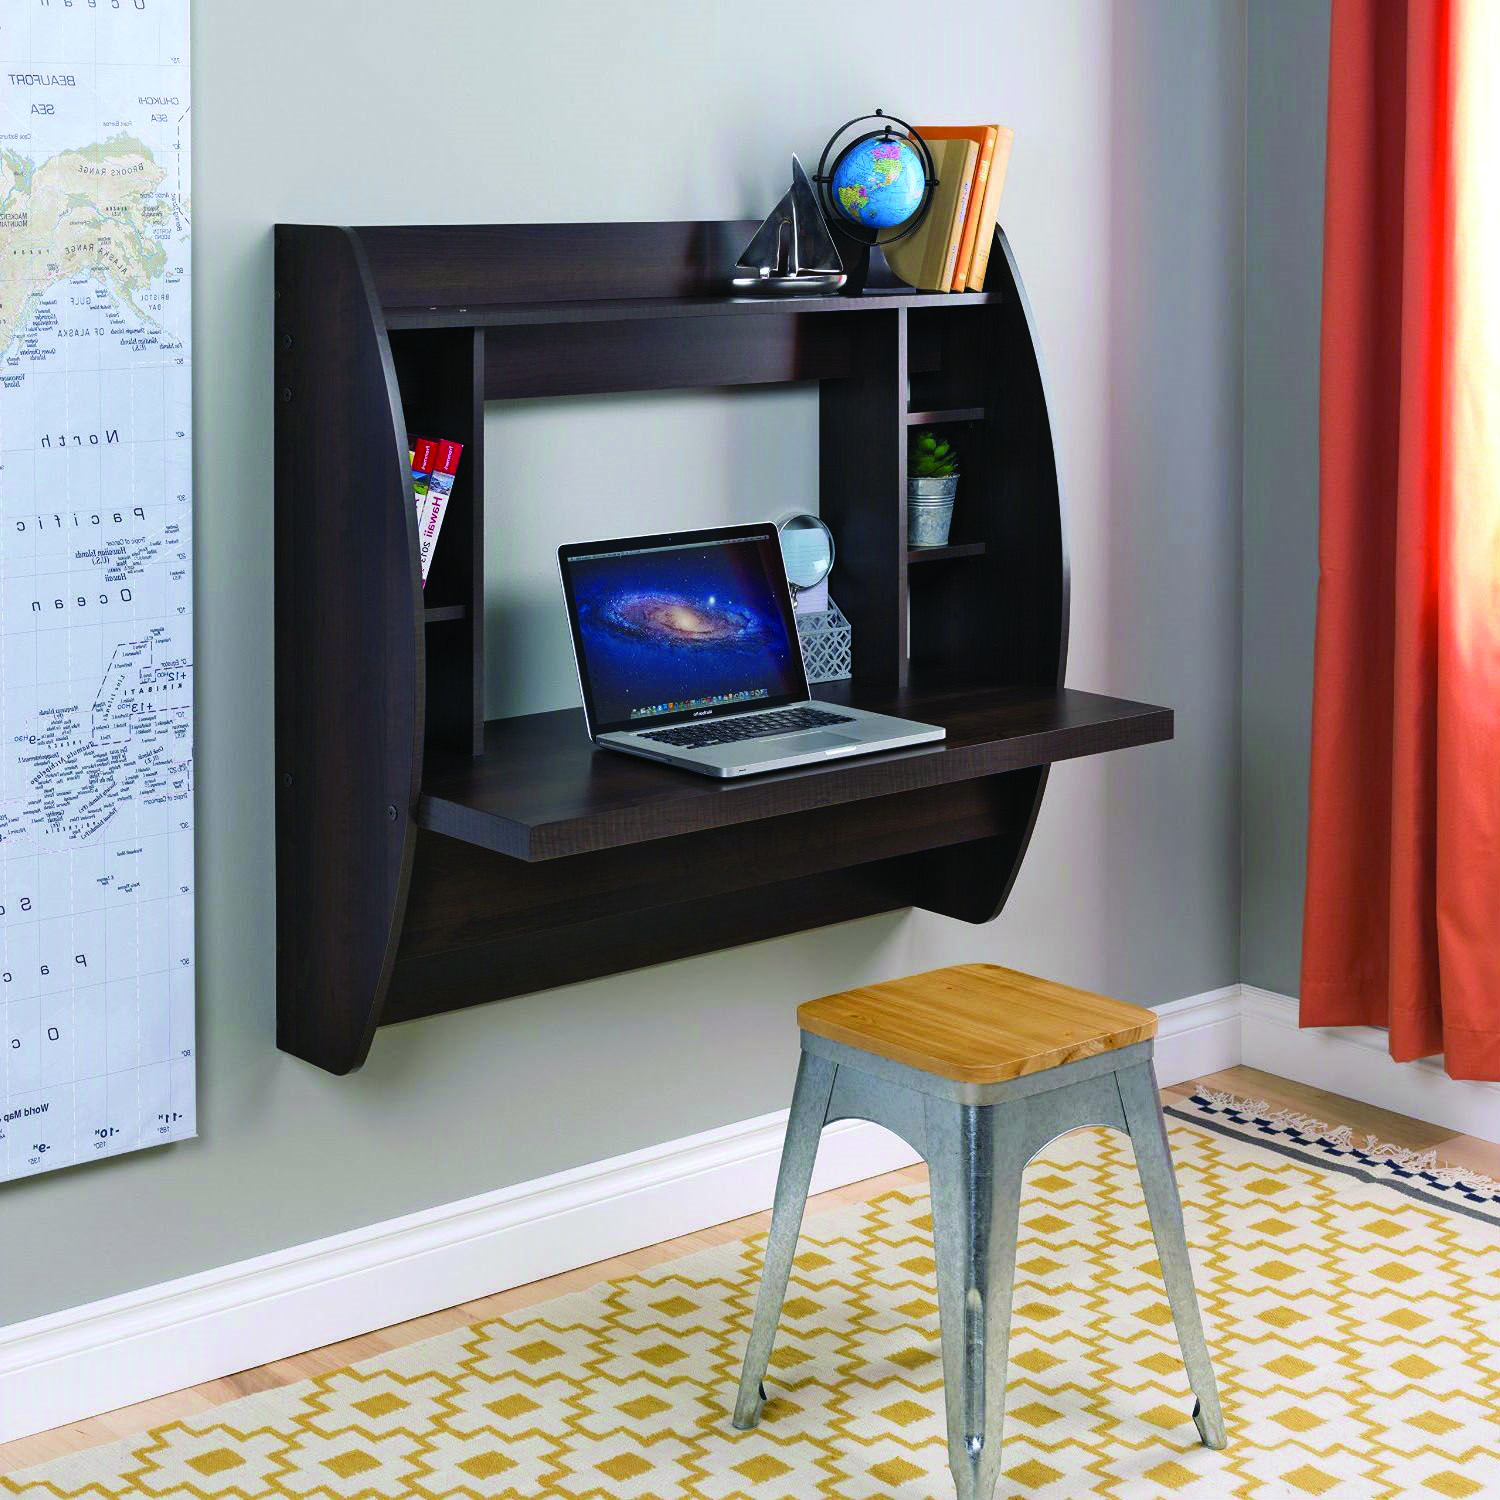 How To Pick The Right Desk For You Wall Mounted Table Space